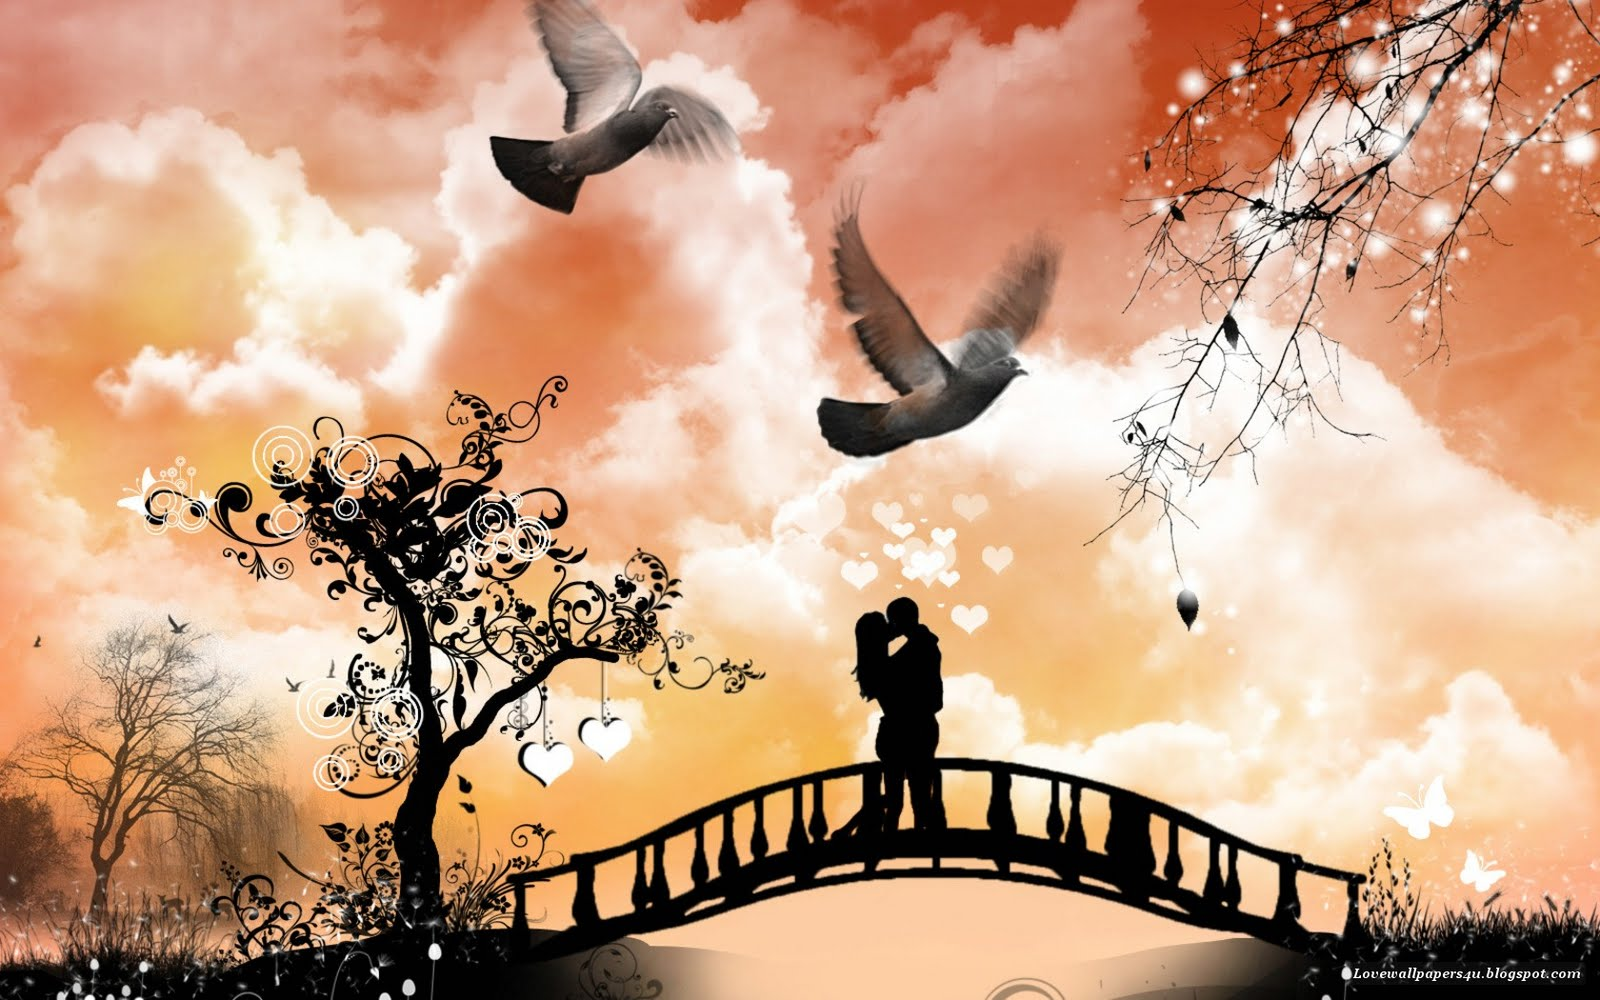 Love Wallpapers In Hd : iWallpapers: LOVE WALLPAPERS HD